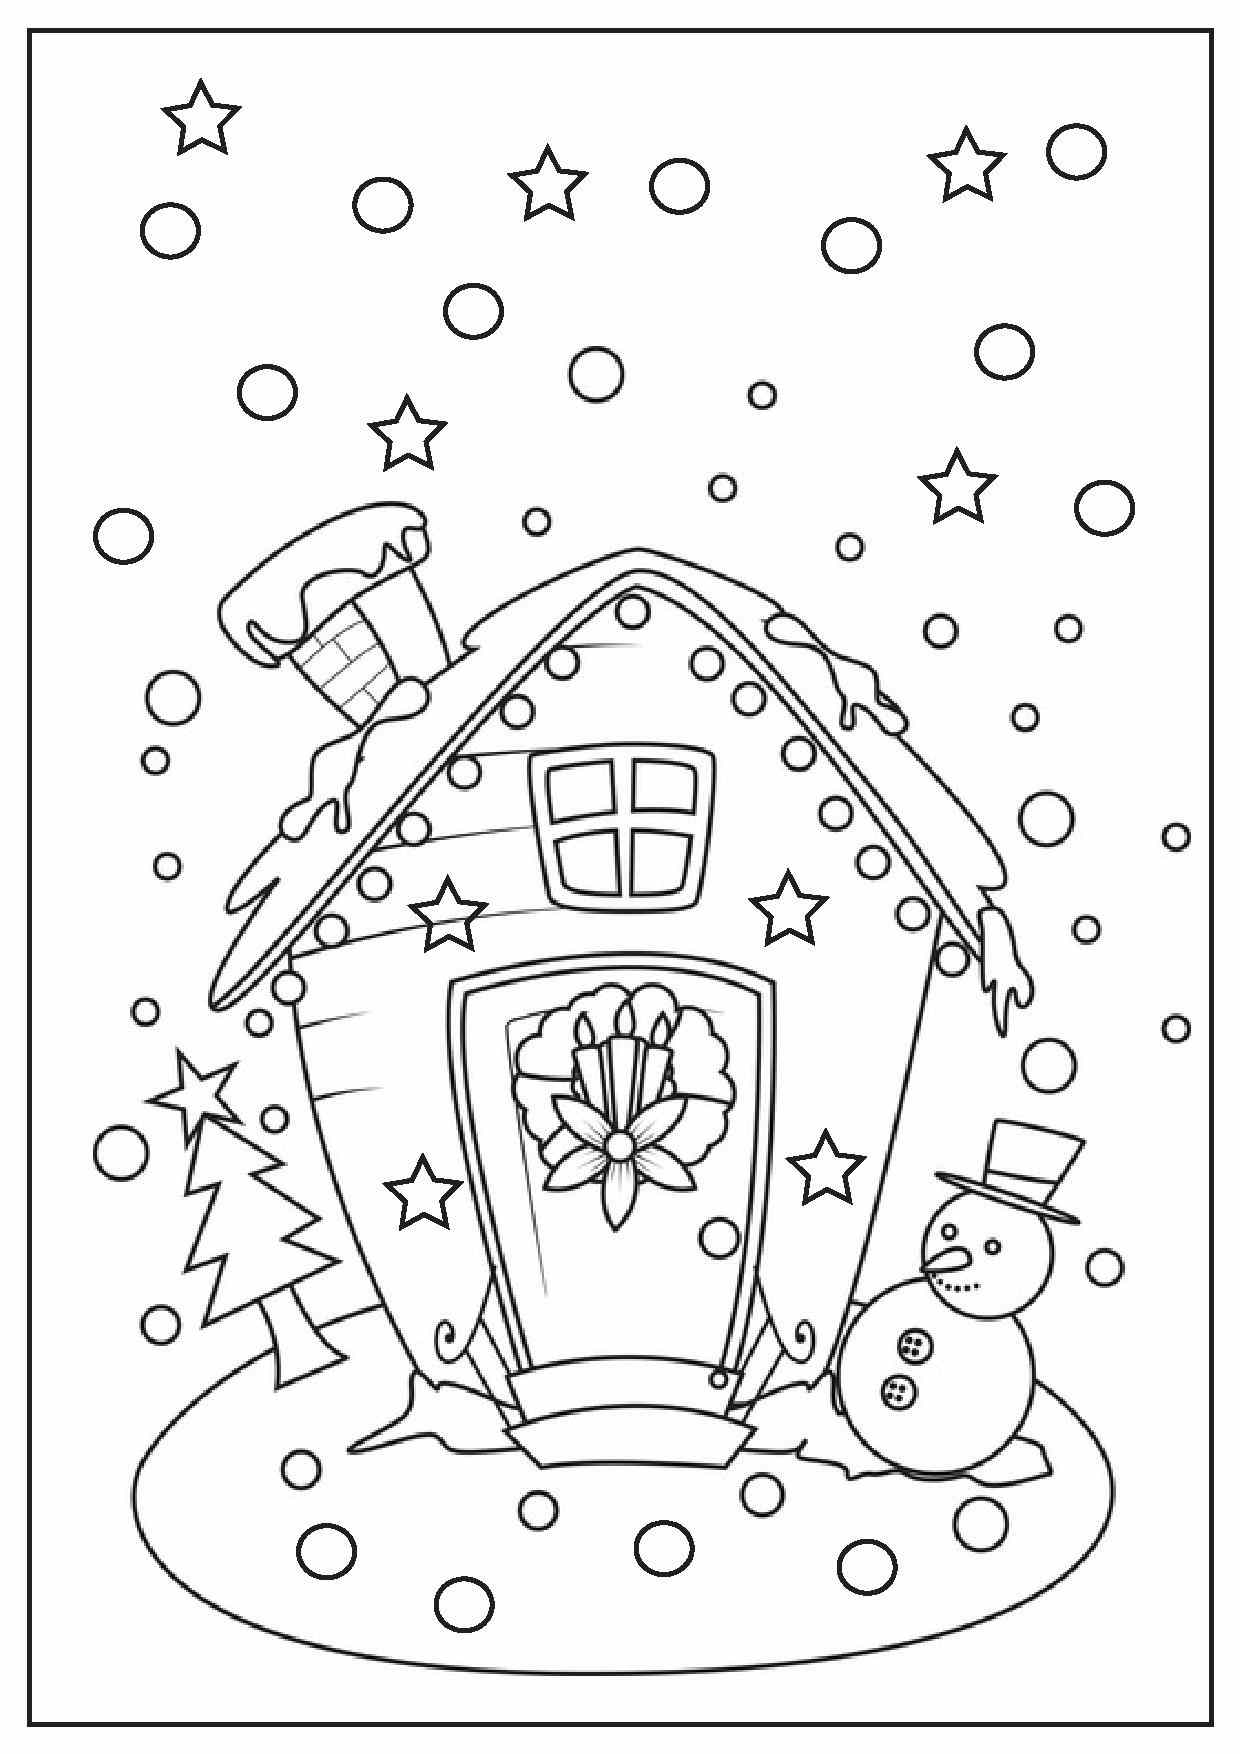 Activity For Kids Drawing at GetDrawings.com | Free for personal use ...